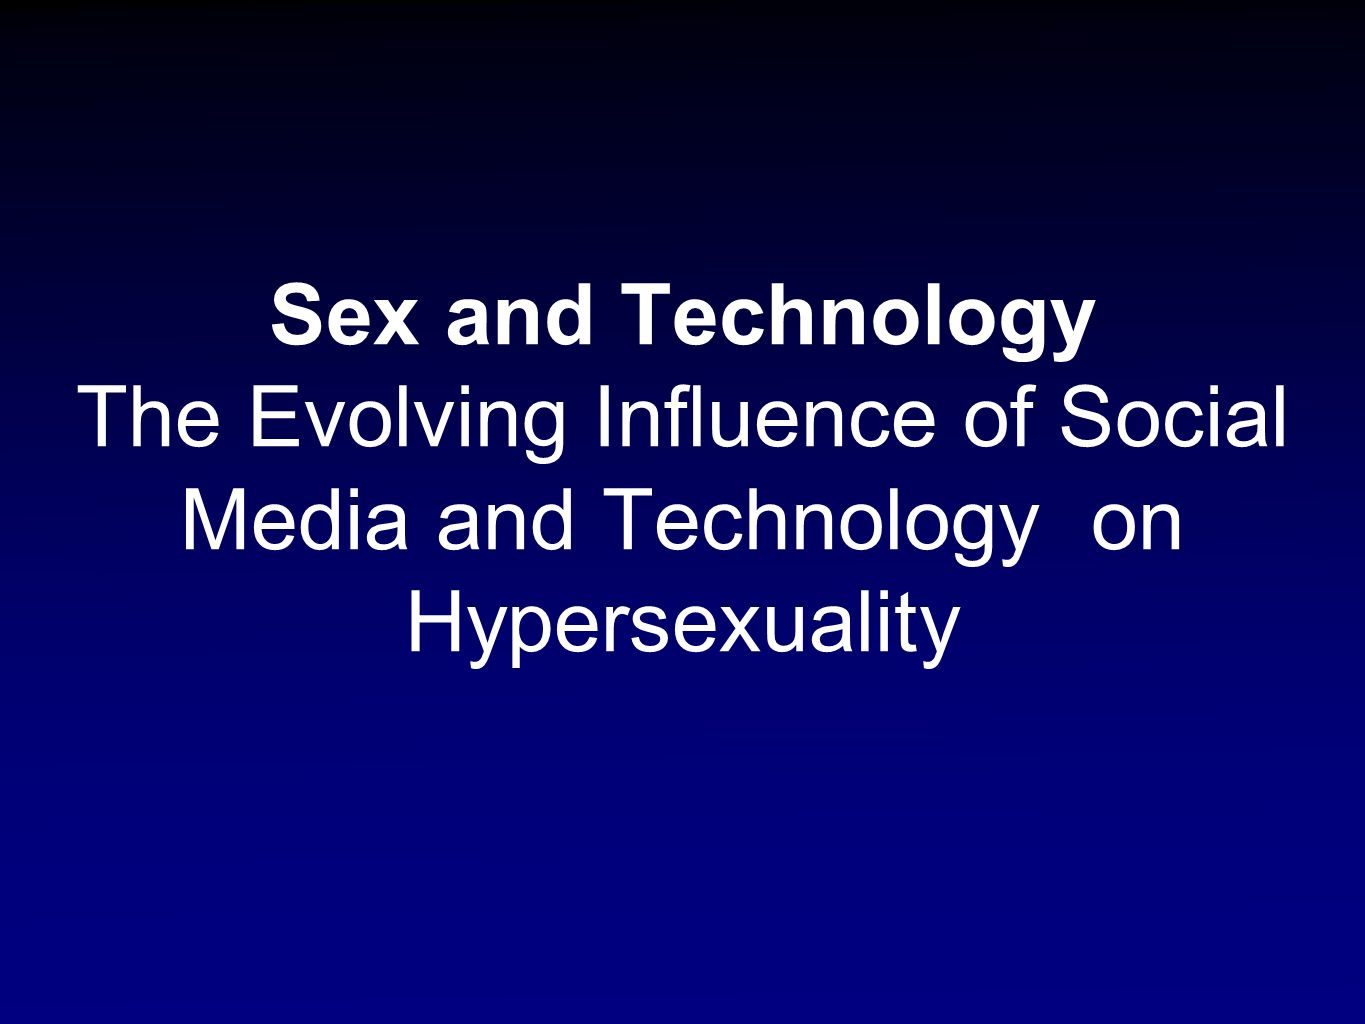 Sex and Technology The Evolving Influence of Social Media and Technology on Hypersexuality